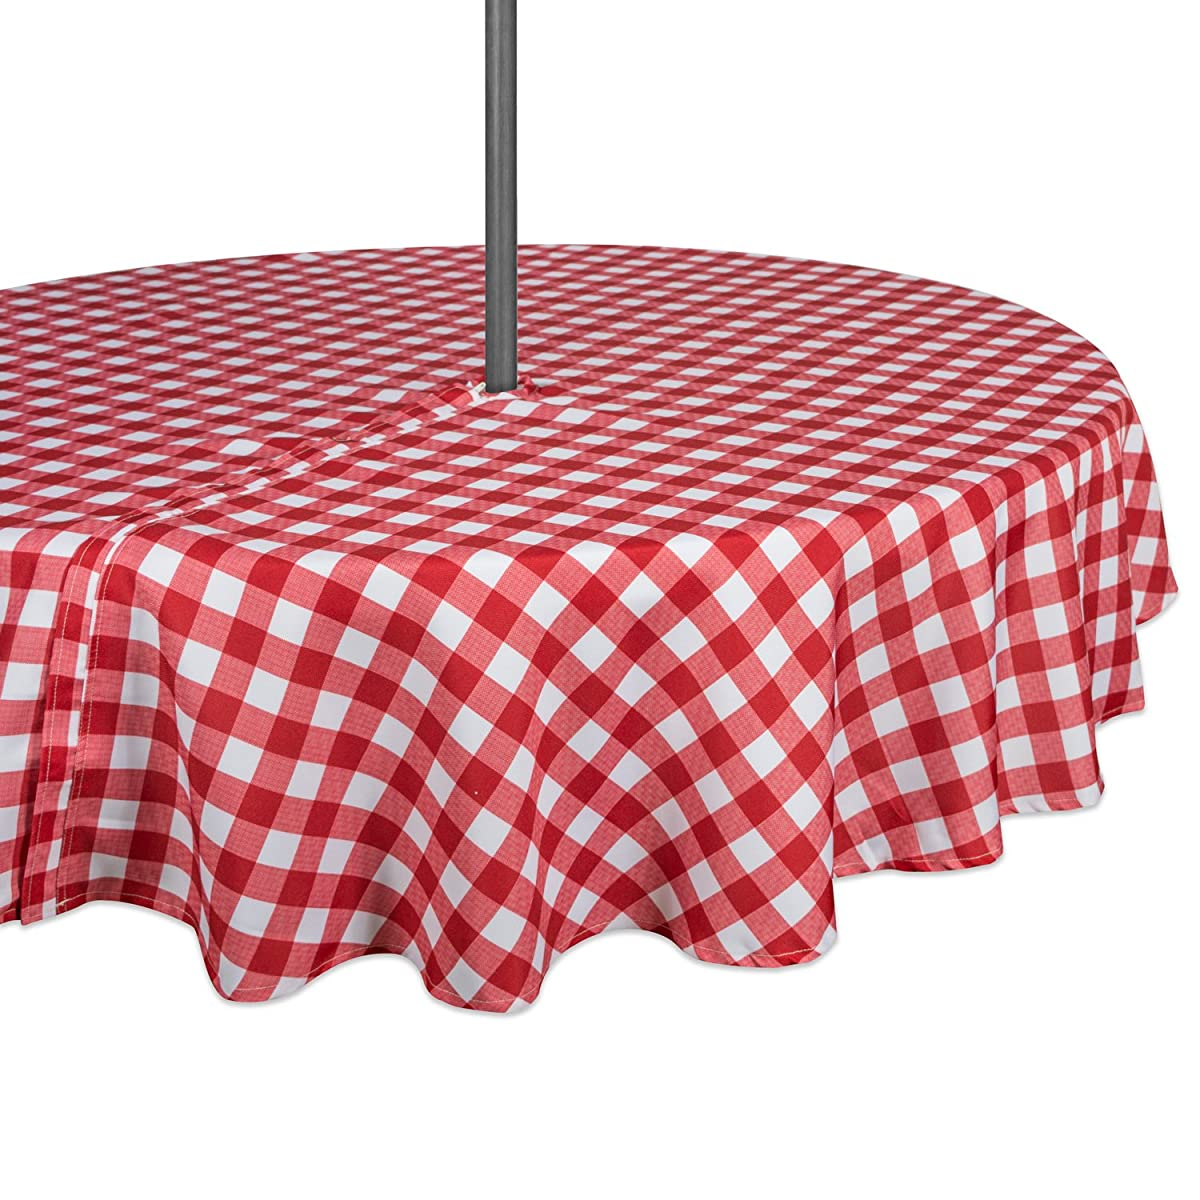 "DII Spring & Summer Outdoor Tablecloth, Spill Proof and Waterproof with Zipper and Umbrella Hole, Host Backyard Parties, BBQs, & Family Gatherings - (60"" Round - Seats 2 to 4) Red Check"